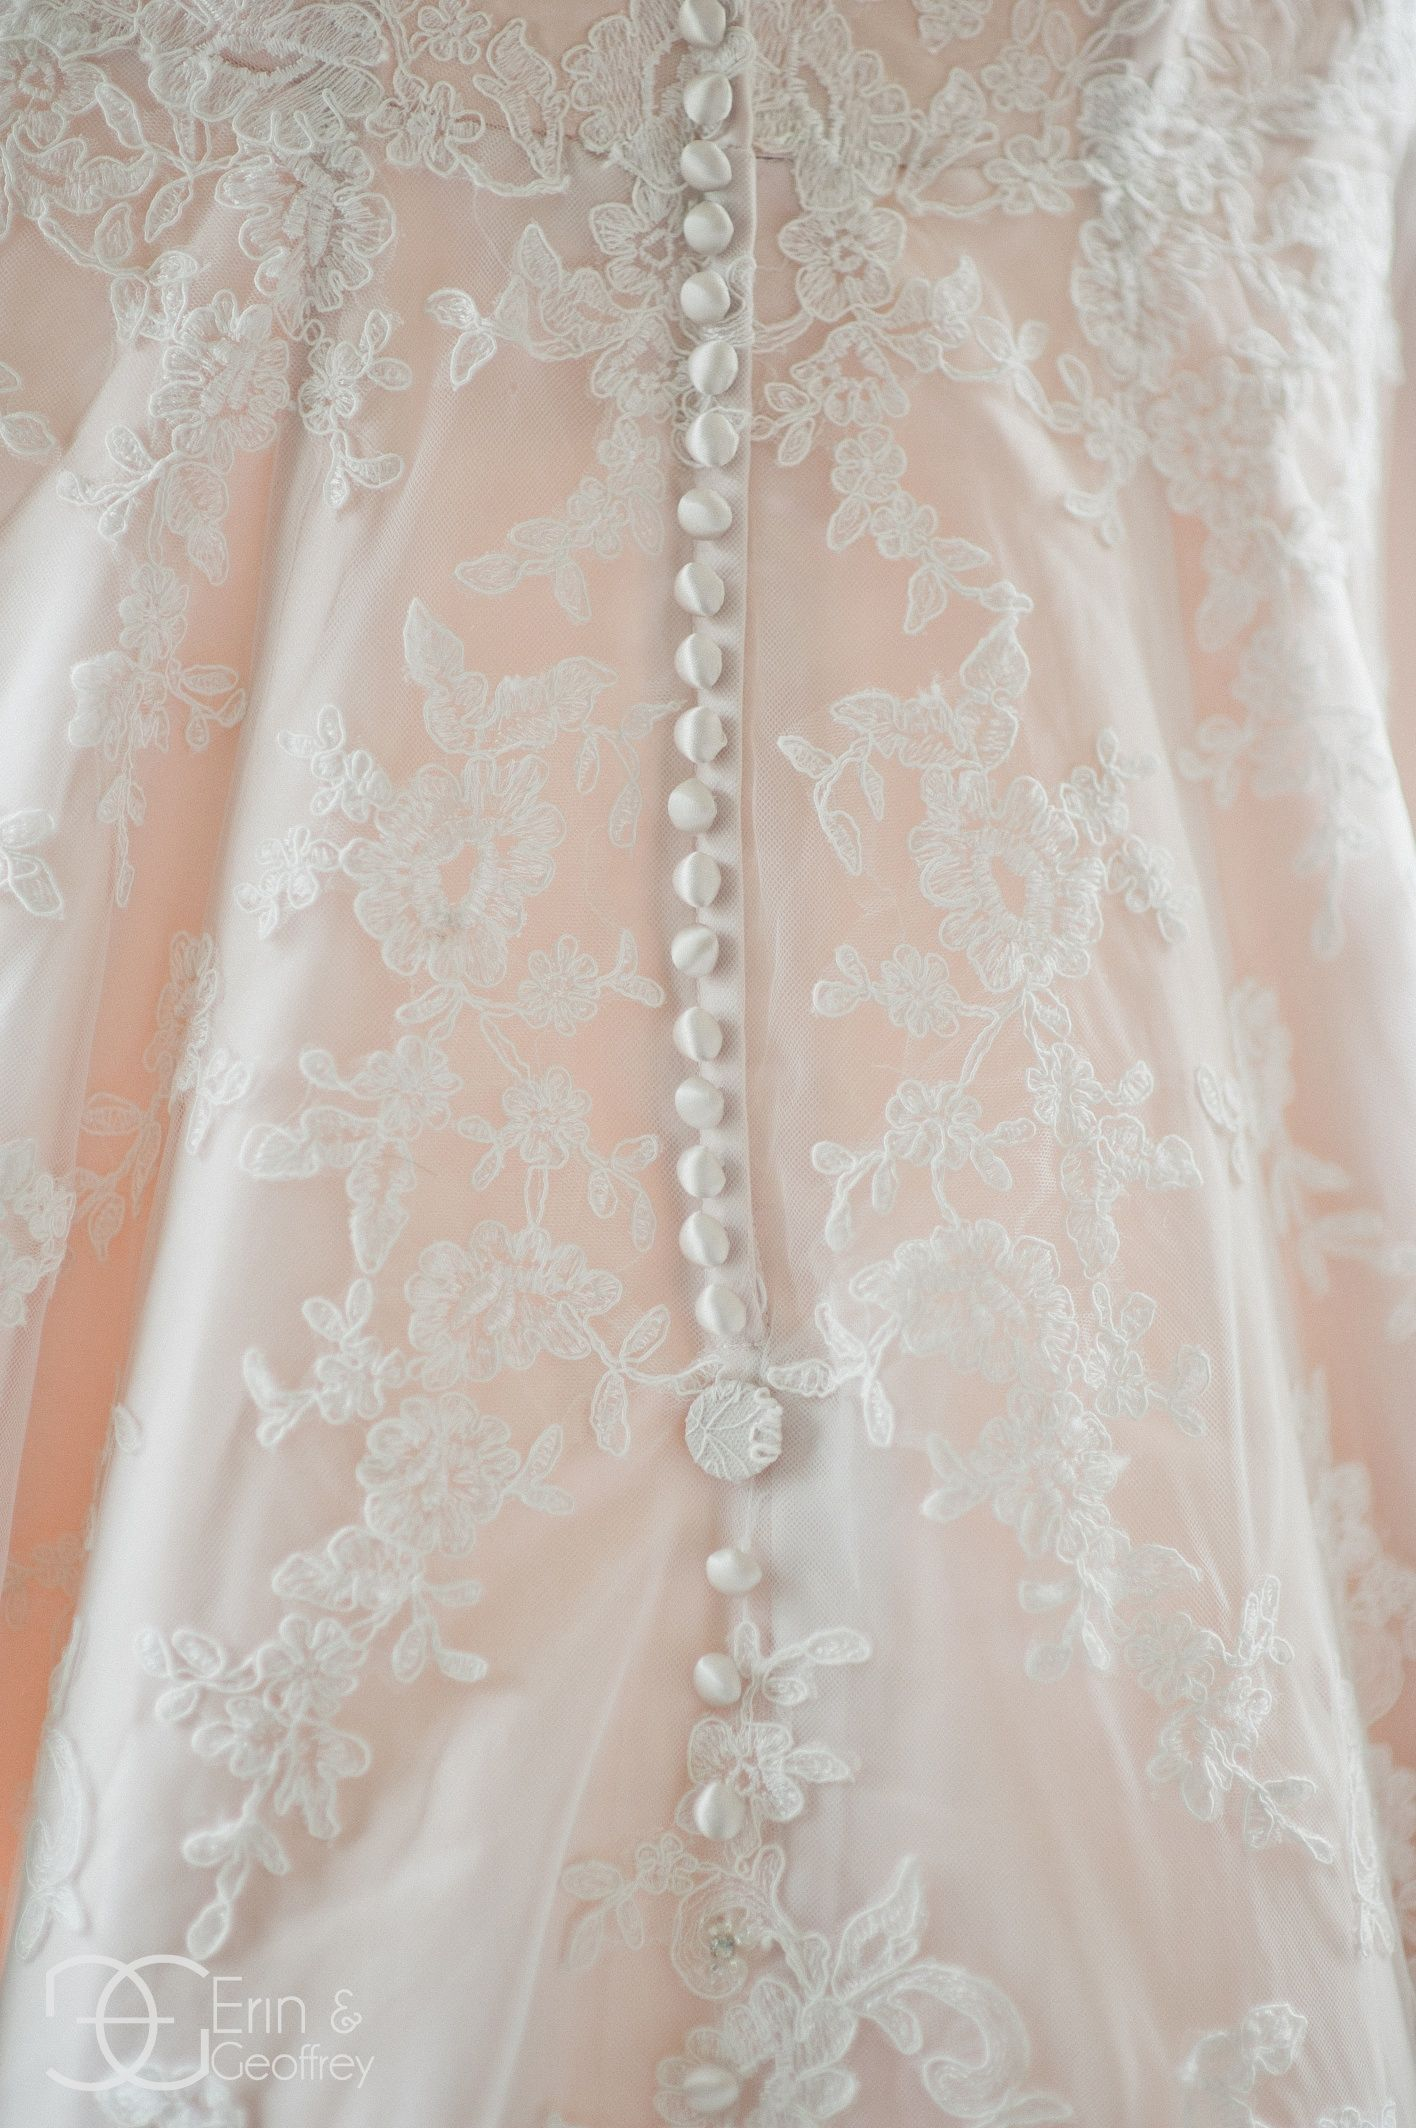 Pink lace wedding dress  Pink Wedding Dress ErinandGeoffrey  too gorgeous with the cream